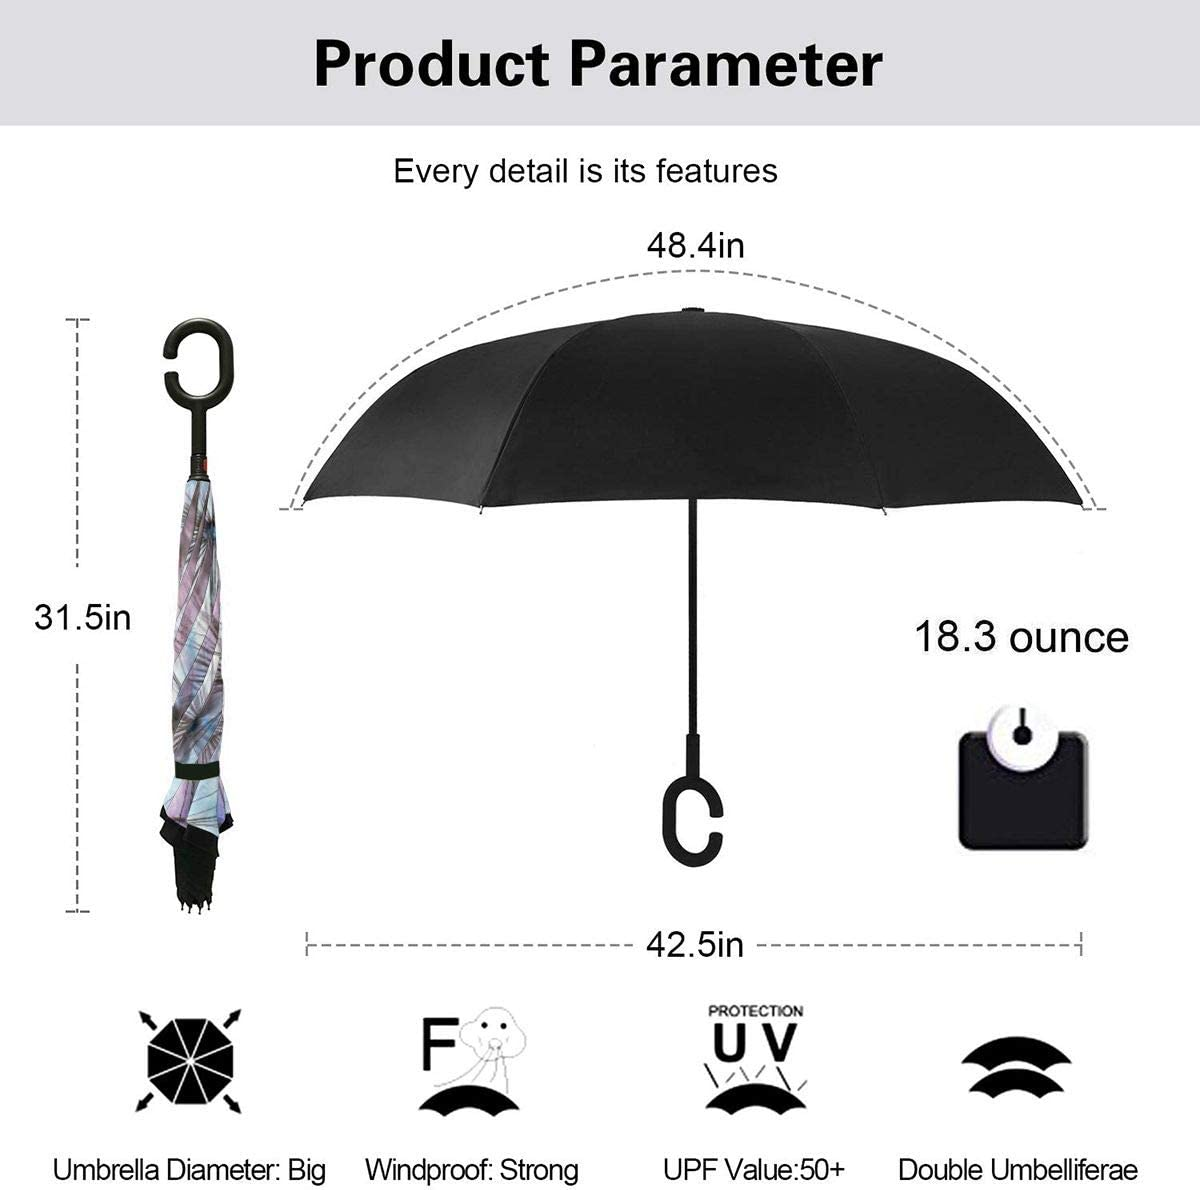 PYFXSALA Dandelion Flower Plant Windproof Inverted Umbrella Double Layer UV Protection Folding Reverse Umbrella for Car Rain Outdoor Self Stand Upside Down with C-Shaped Handle